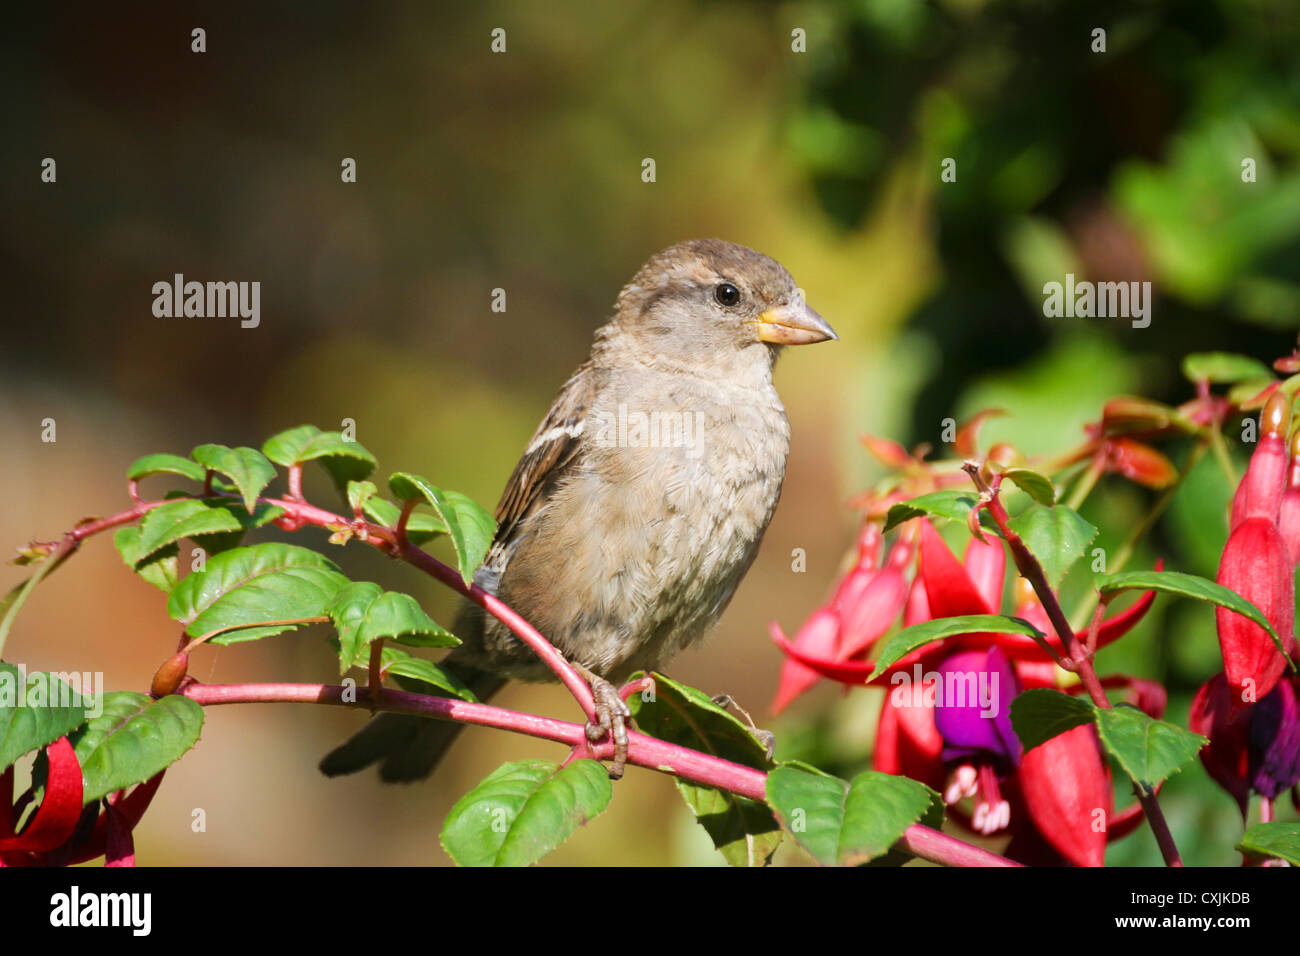 Small (Passer domesticus) House Sparrow bird - sitting on a fuchsia plant in a garden in summer, UK - Stock Image